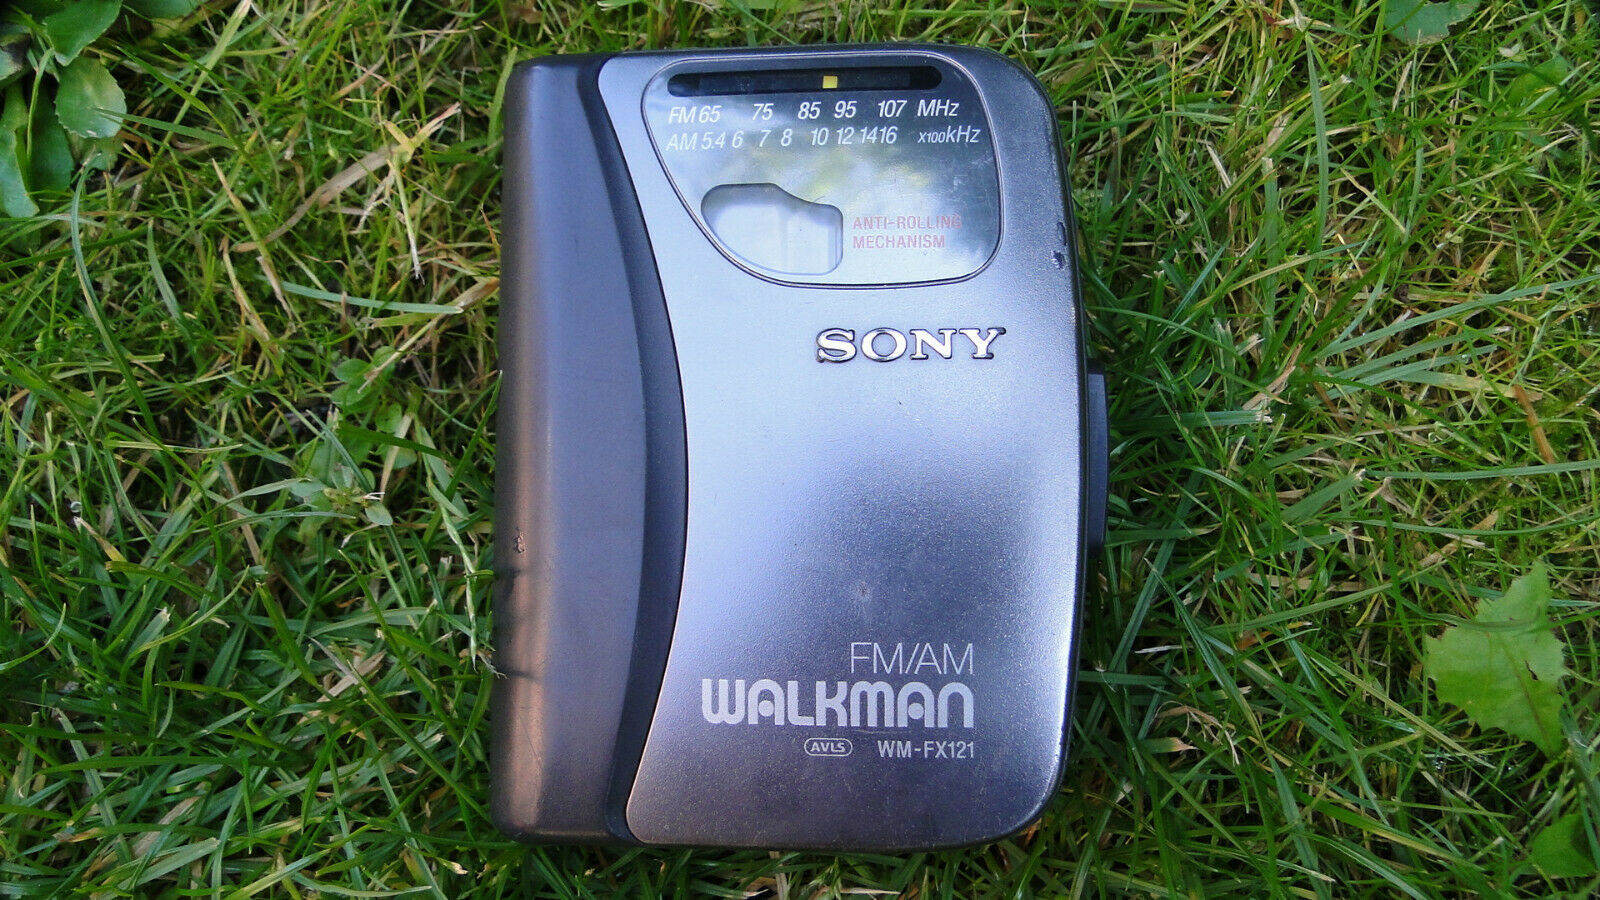 Sony Walkman Cassette Player: 4 customer reviews and 70 listings